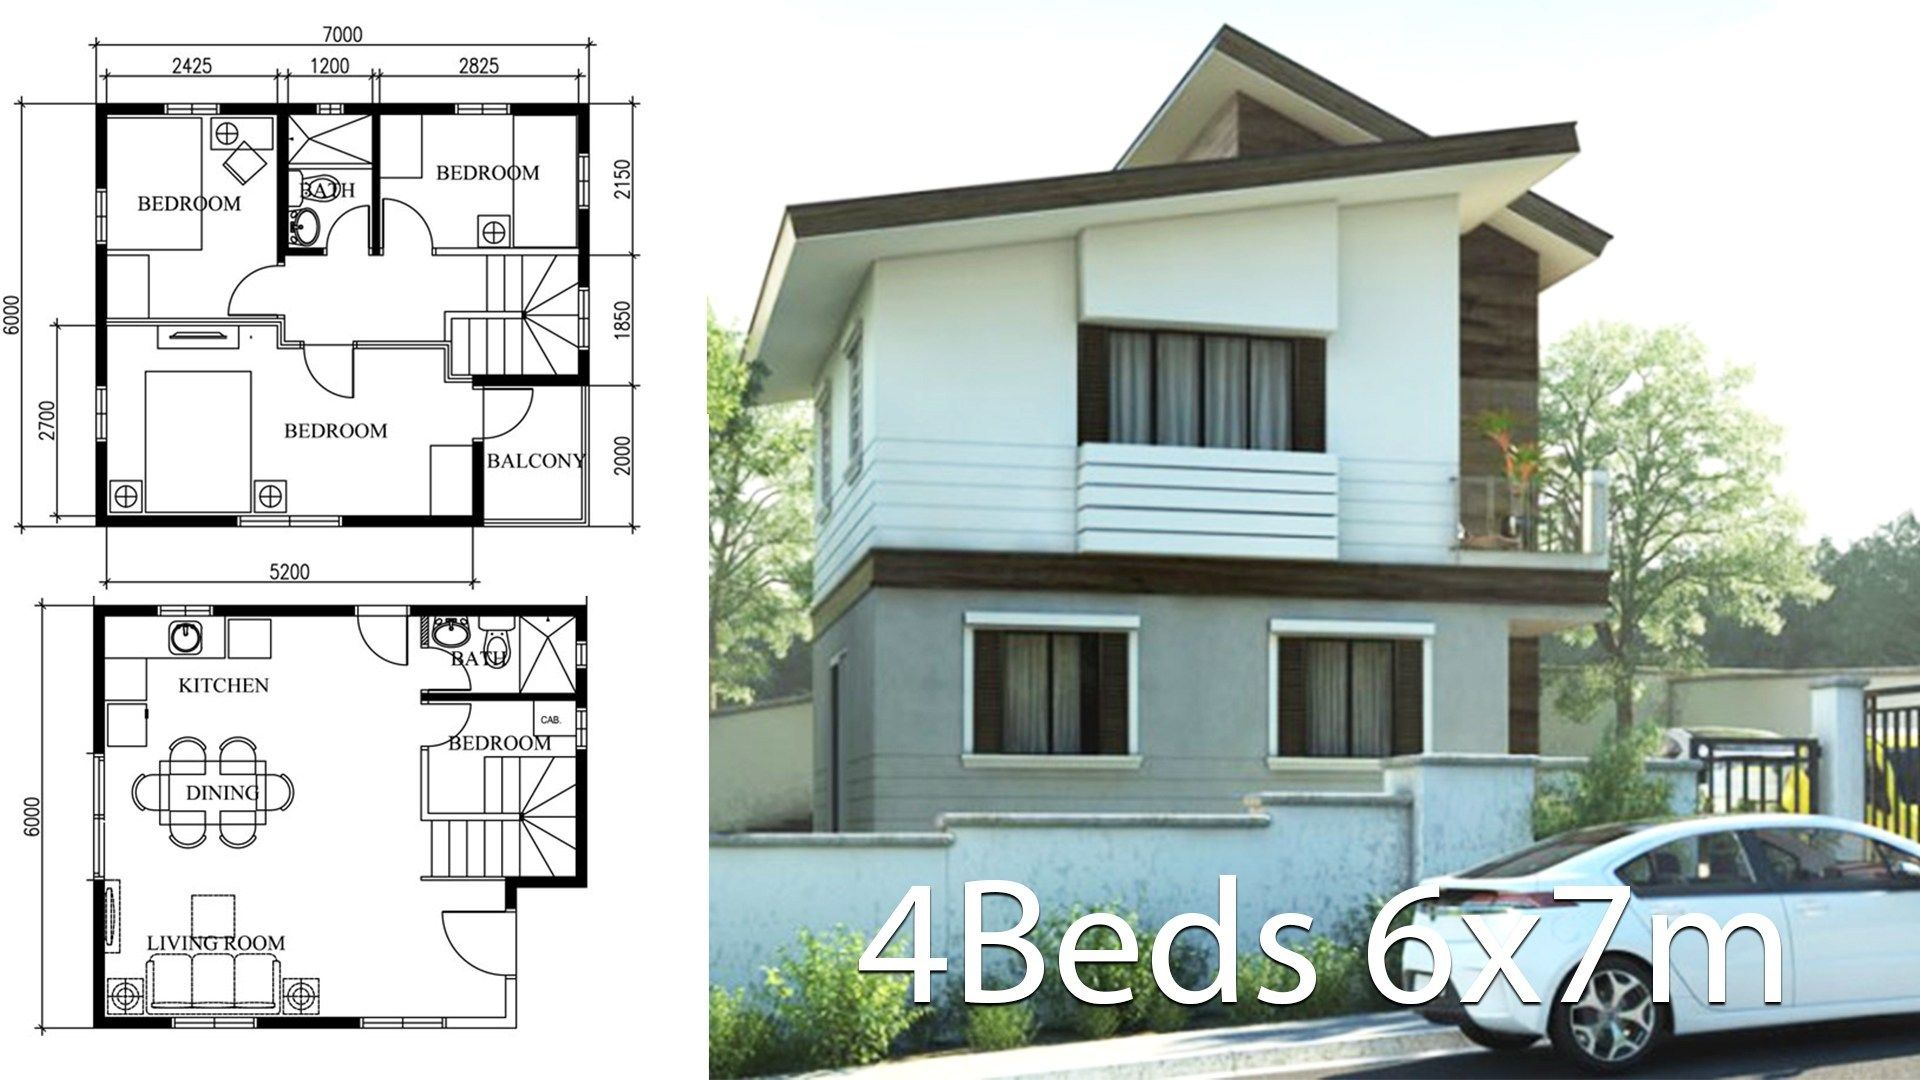 Small Home Design Plan 6x7m With 4 Bedrooms Home Plans Small House Design Bungalow House Design Home Design Plan